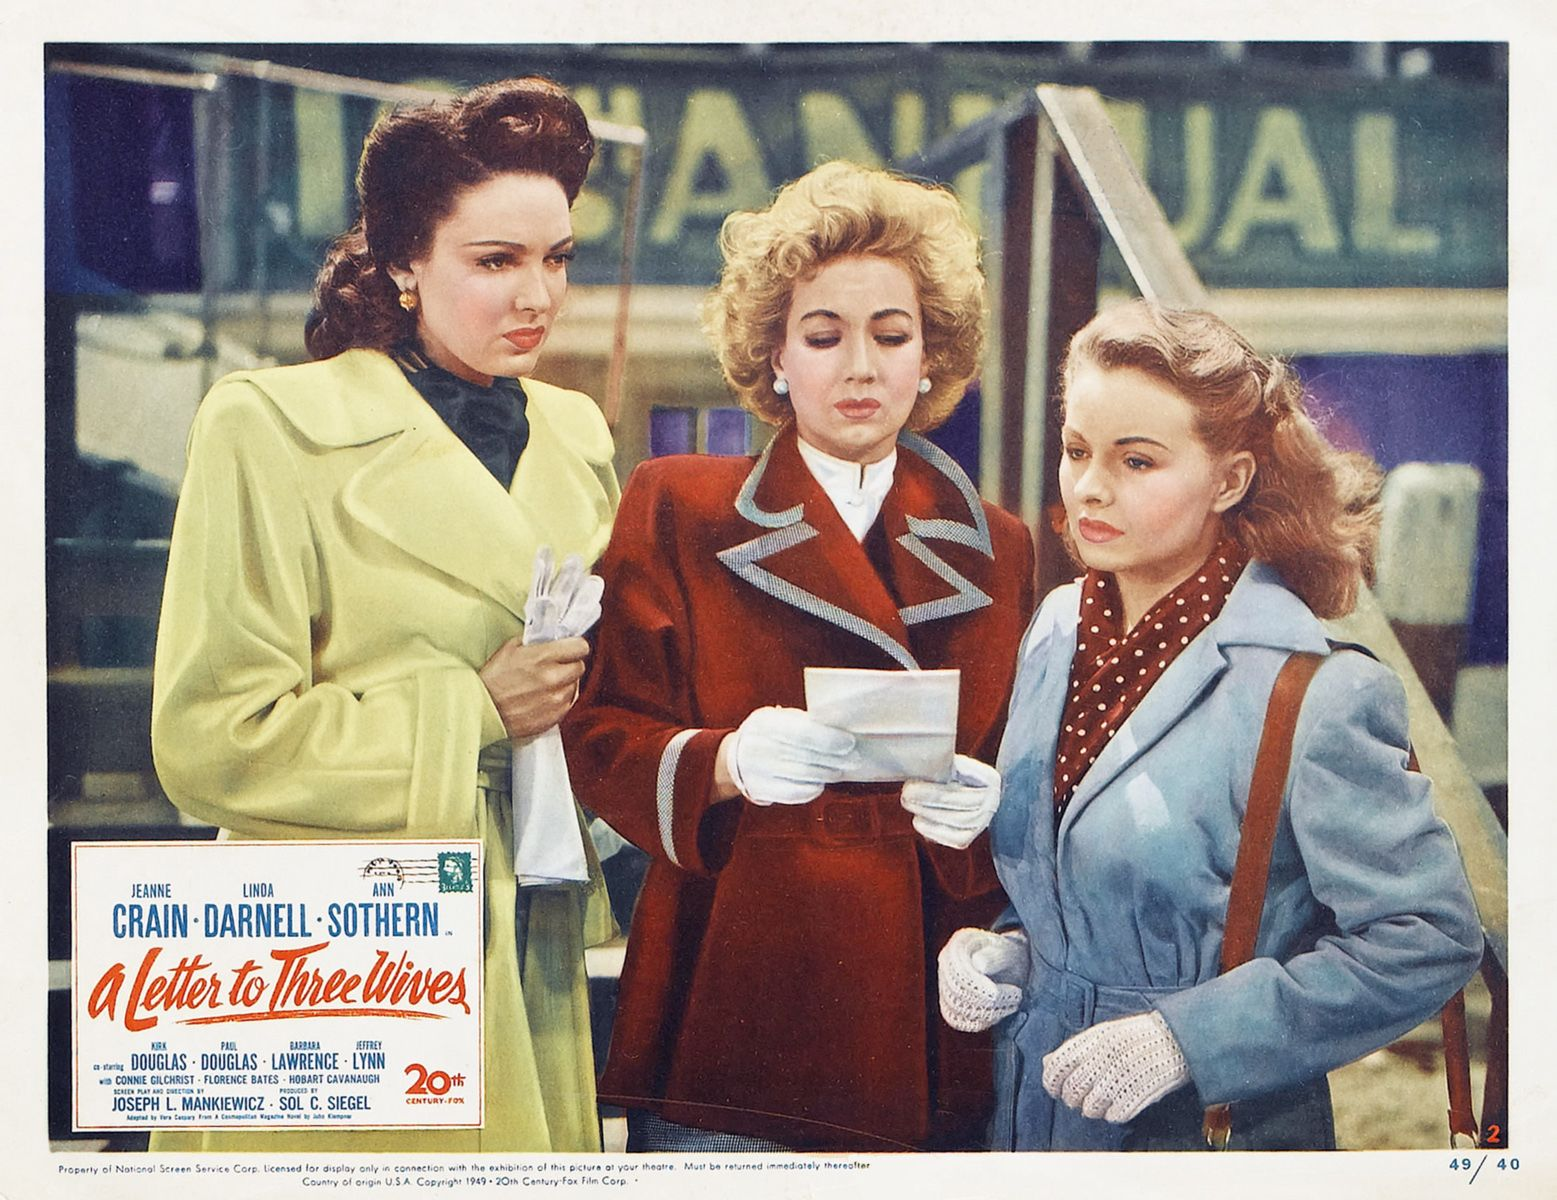 Lobby card for A Letter to Three Wives 1949 American romantic